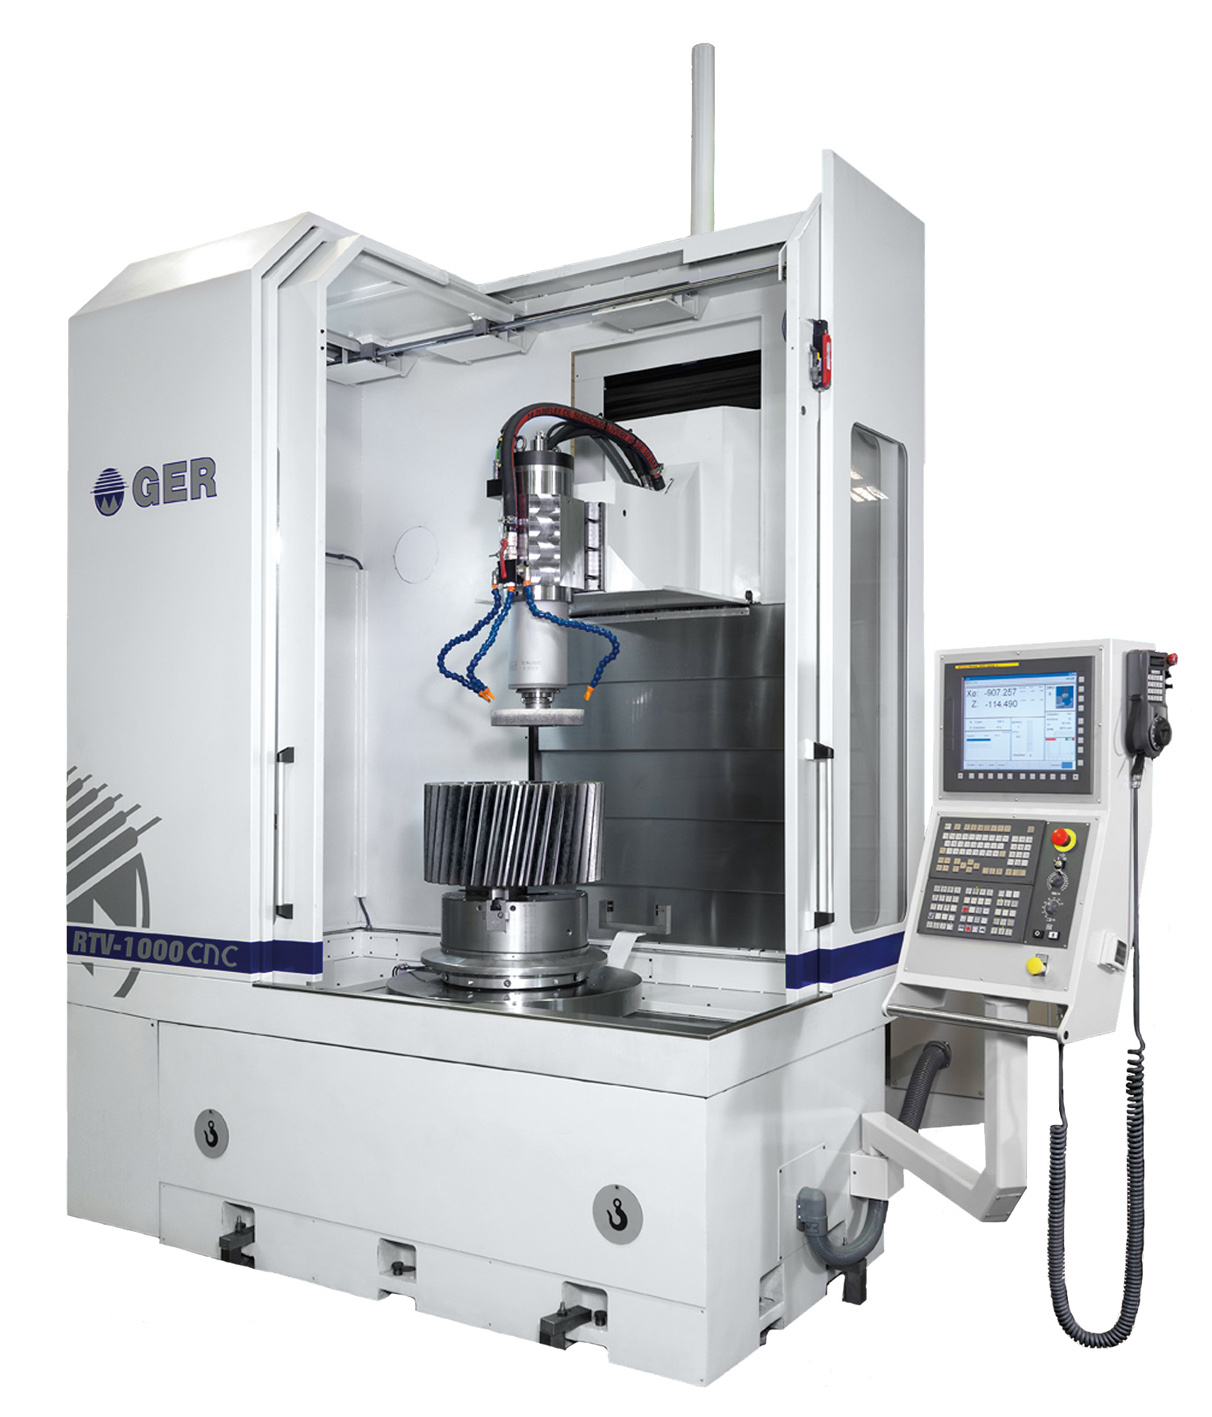 VERTICAL CNC CYLINDRICAL GRINDERS